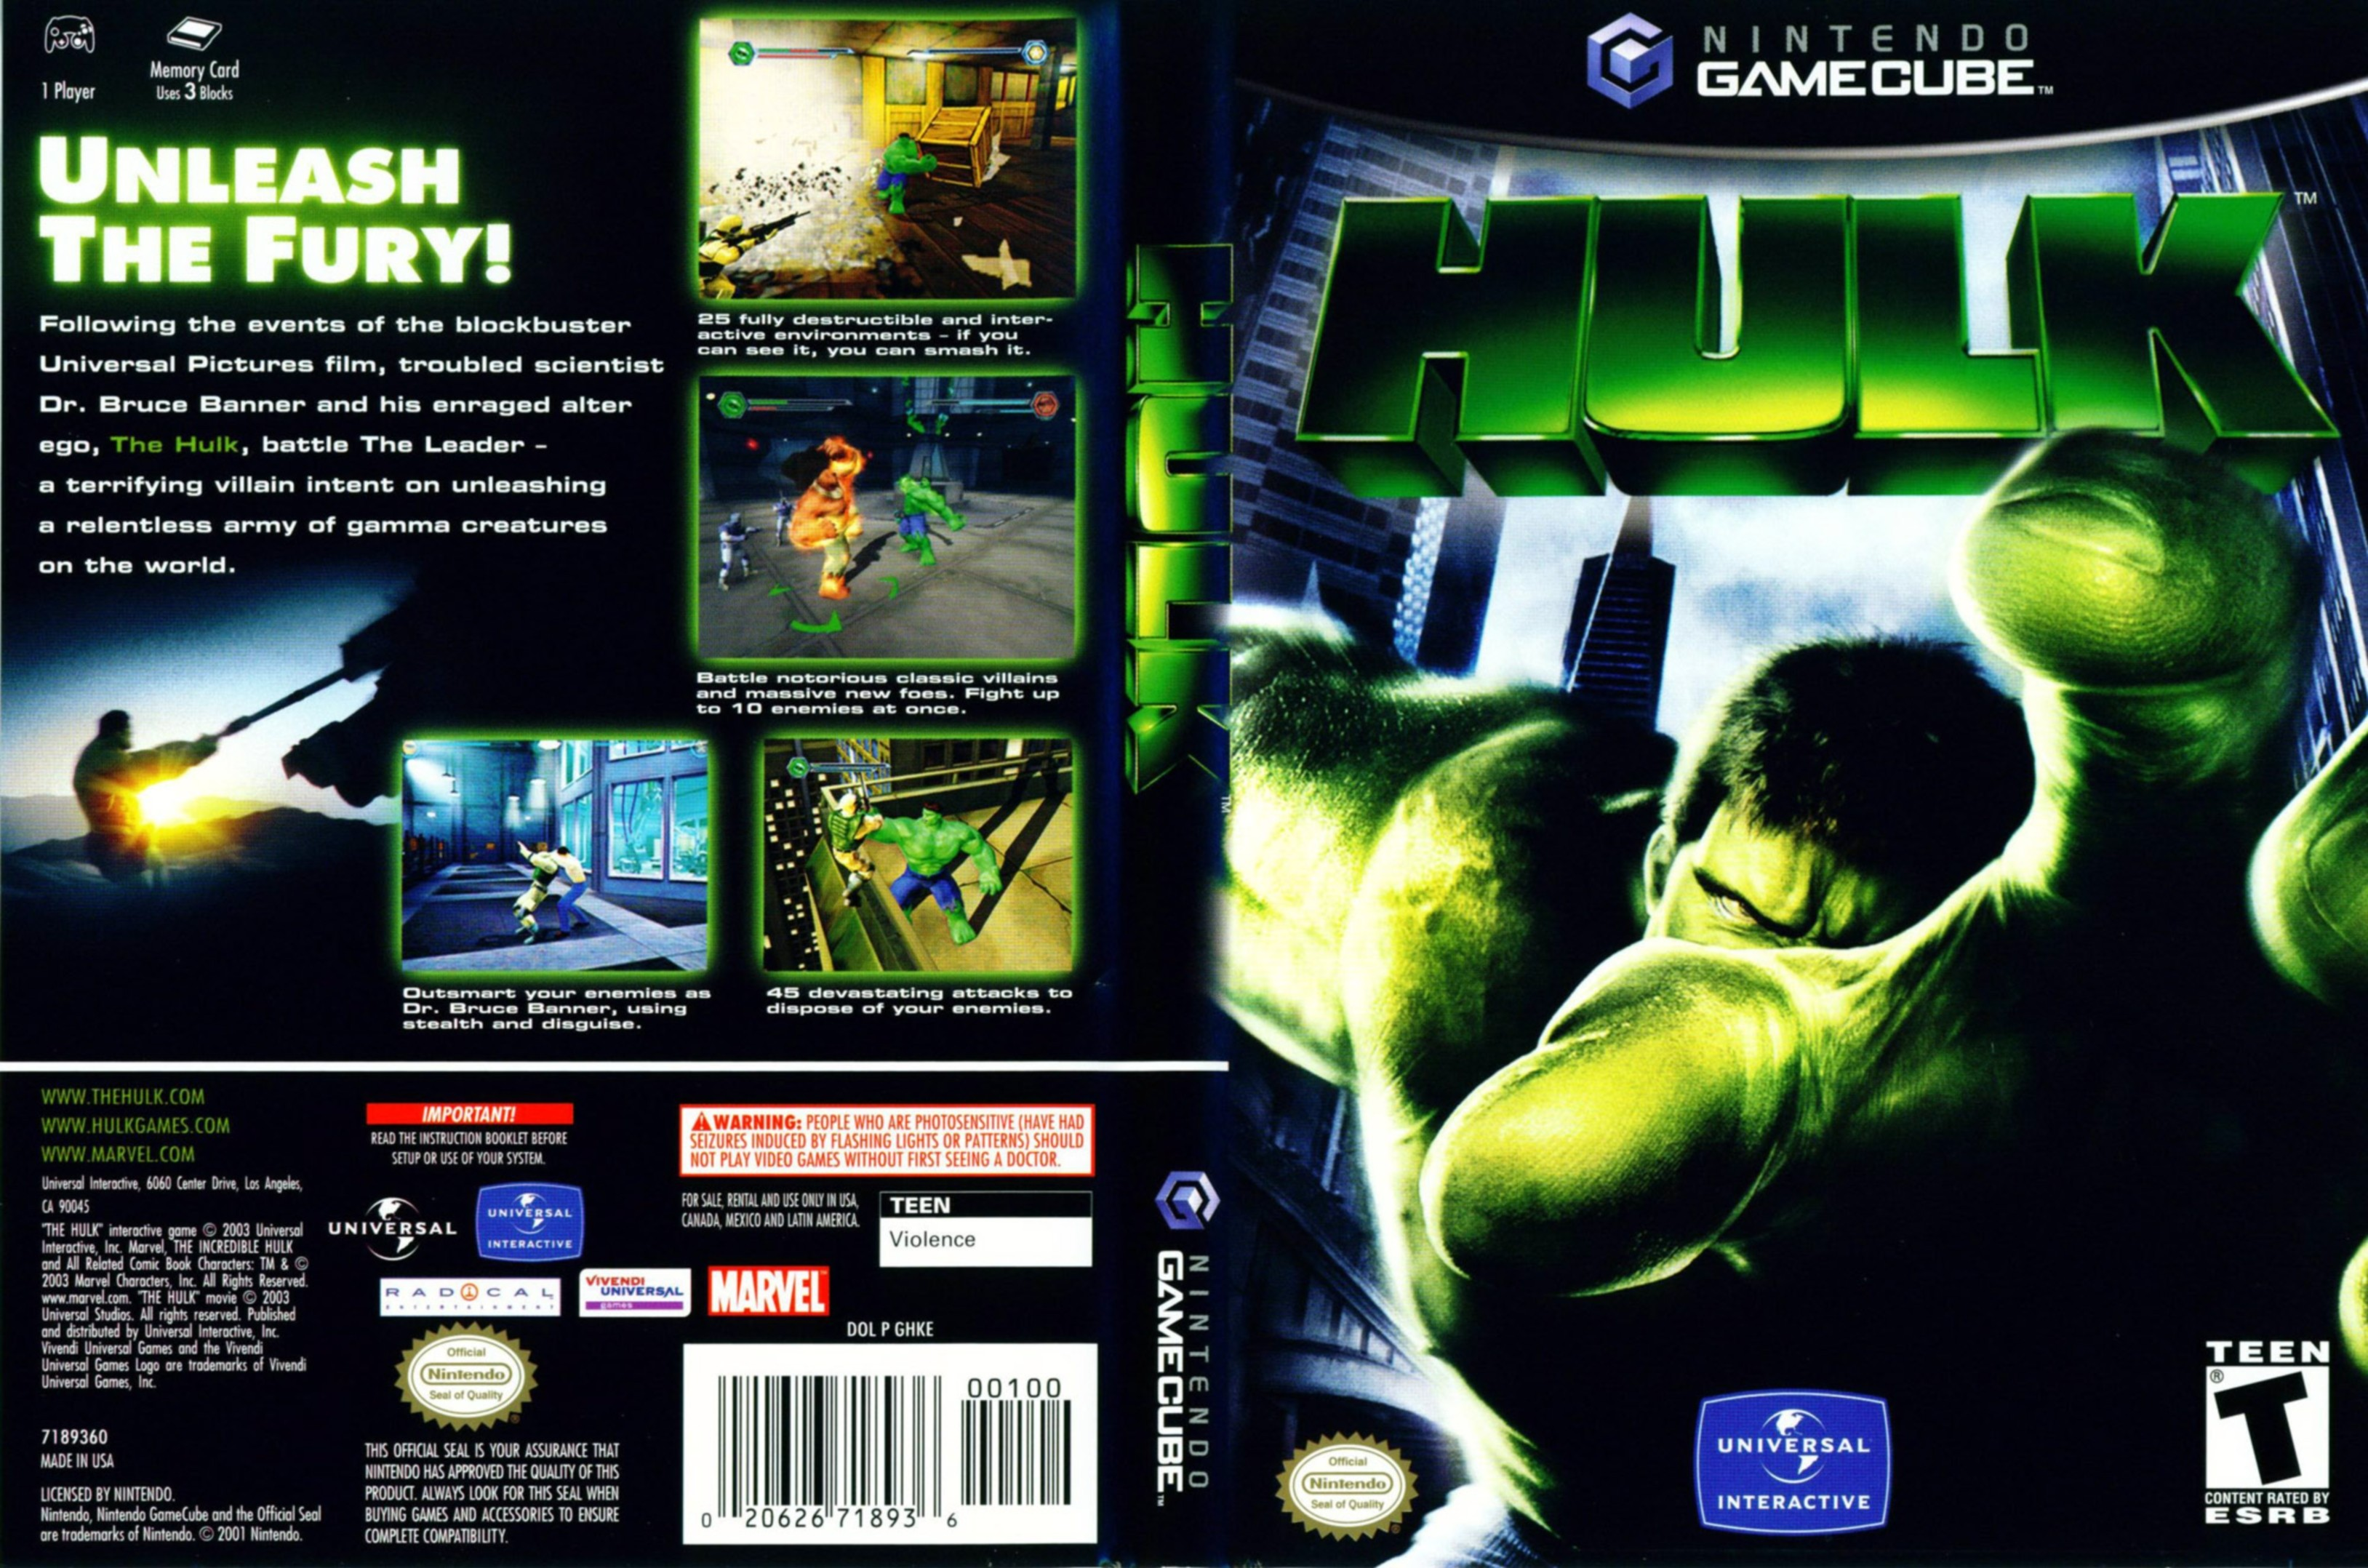 Psp games for pc